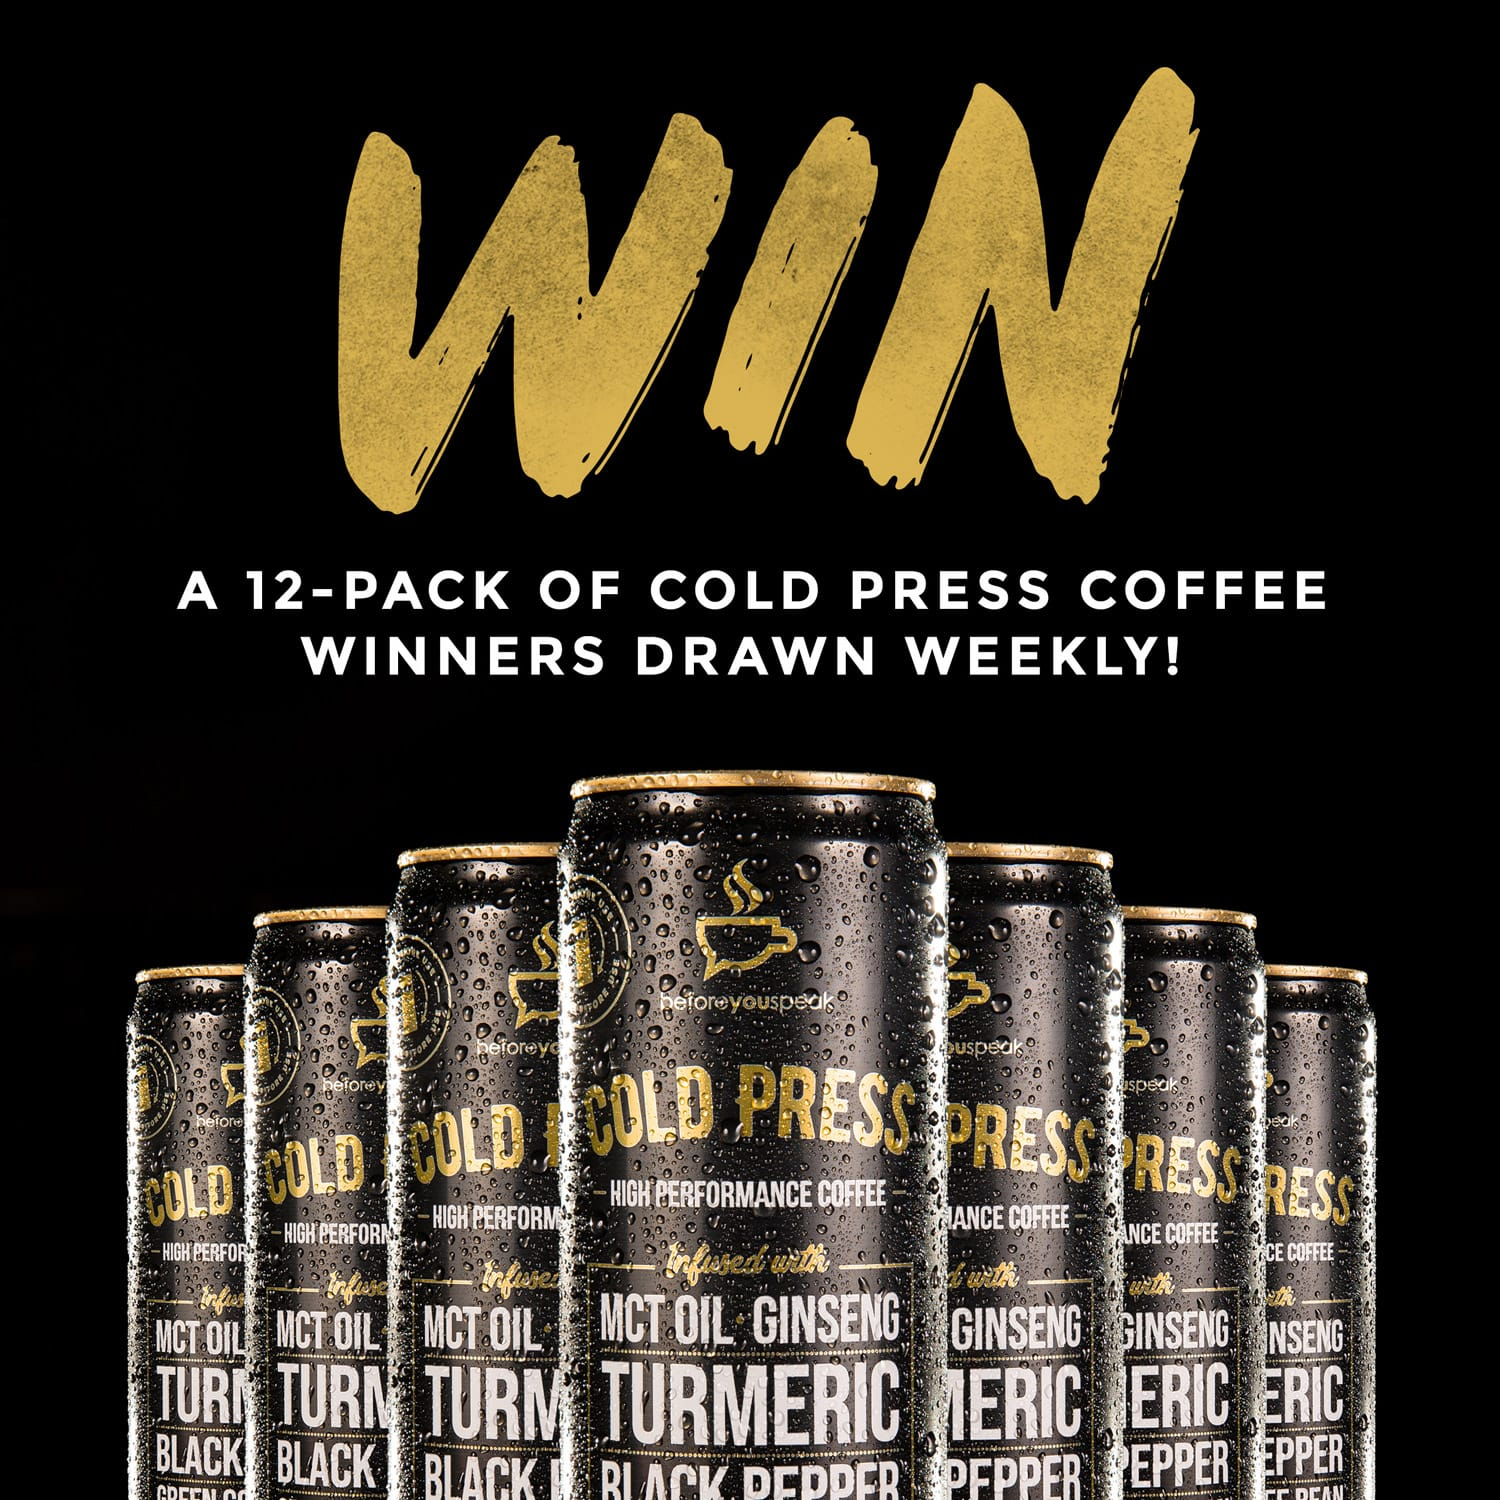 Win a 12-pack of Cold Press Coffee